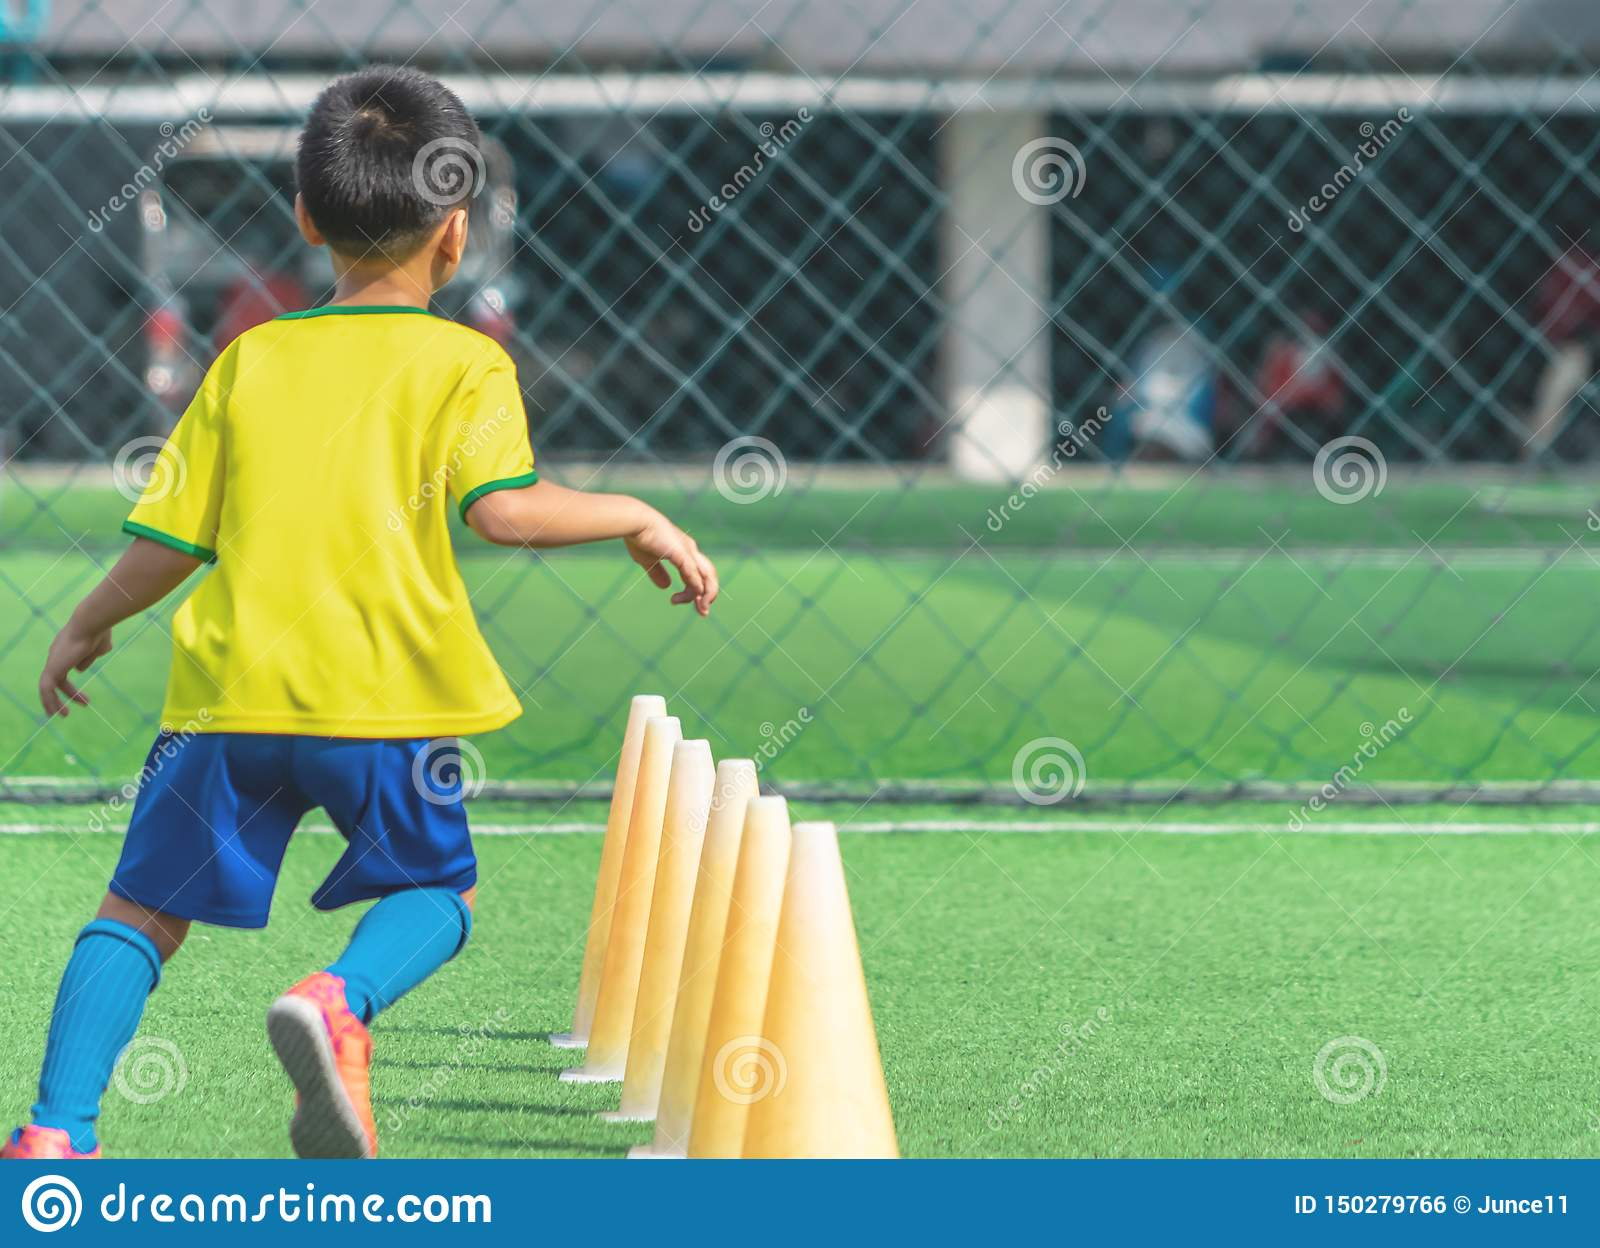 Soccer Boy training alone with cone on training ground